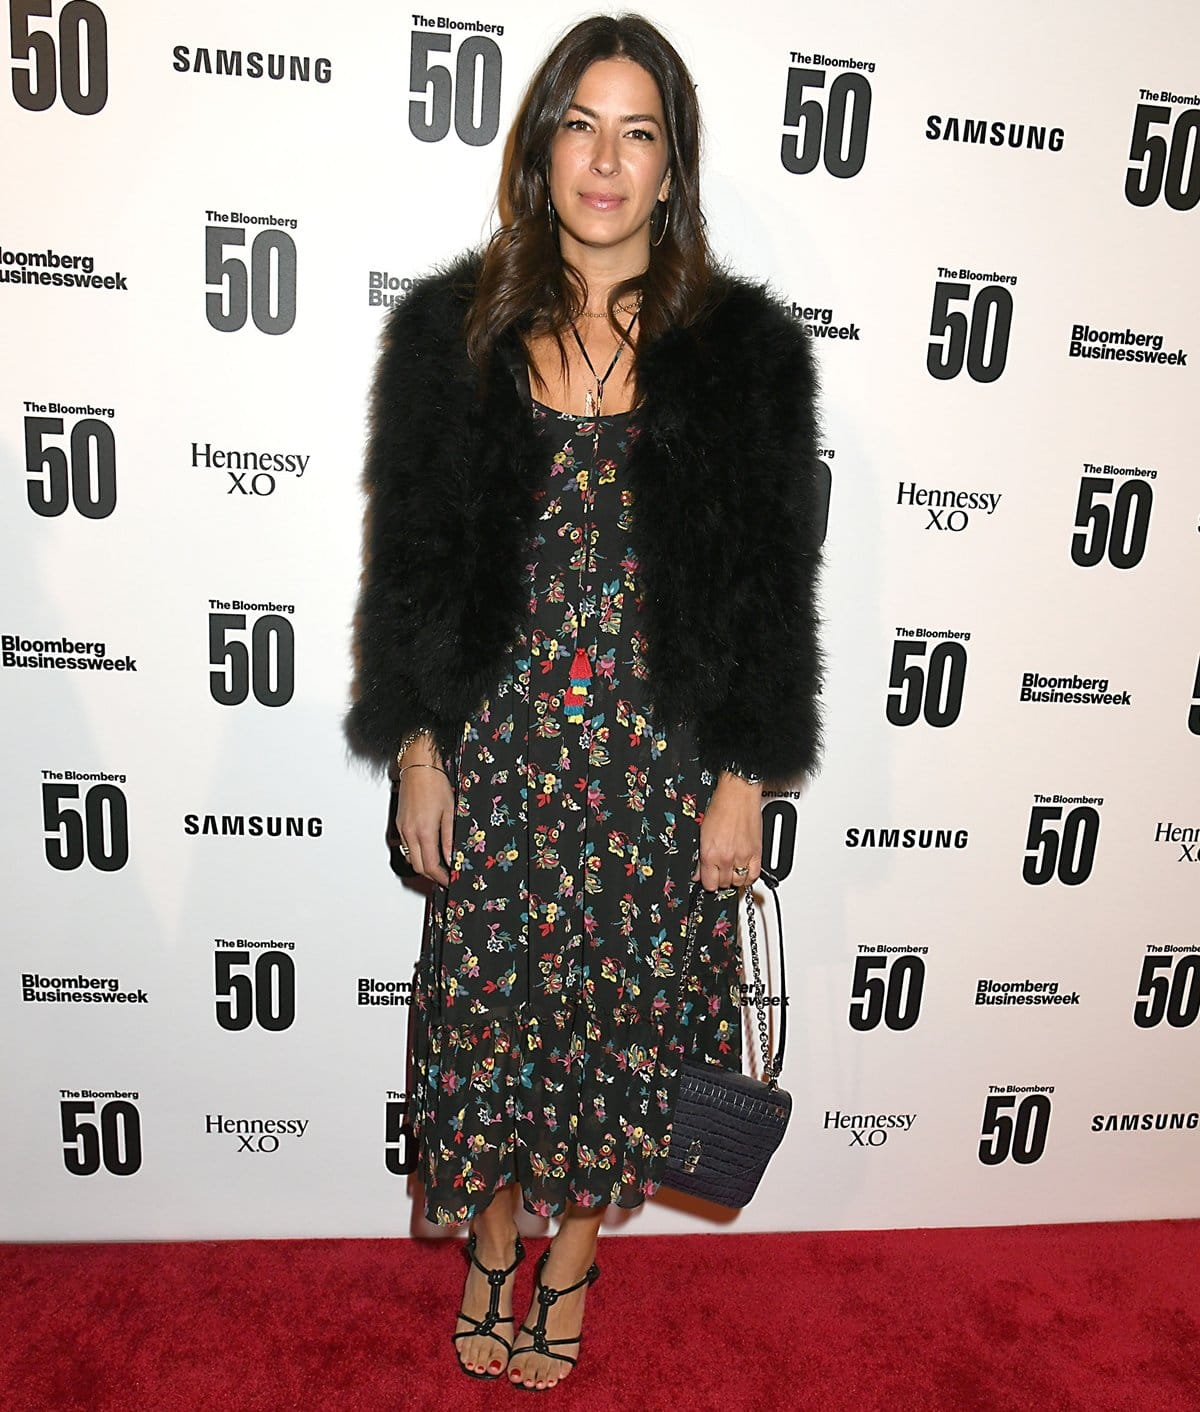 Co-founder and Creative Director of her namesake company Rebecca Minkoff attends